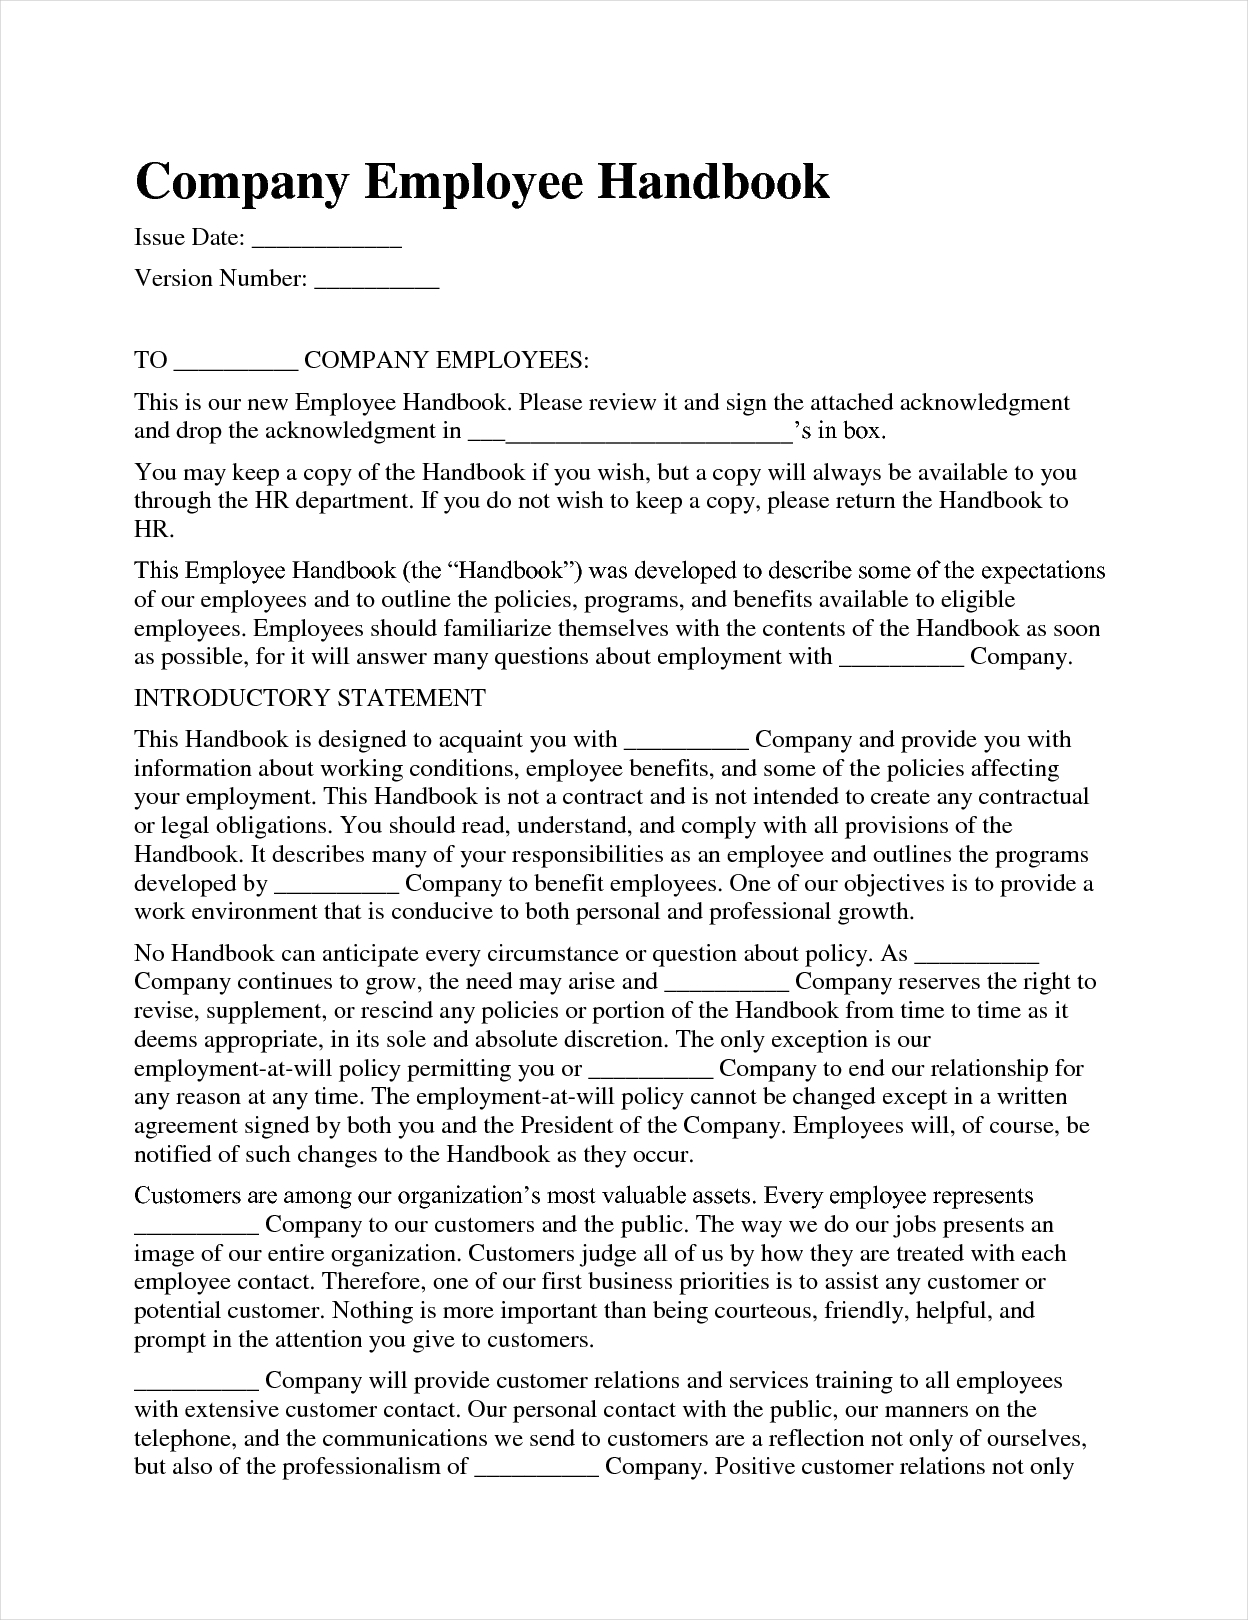 company employee handbook introduction